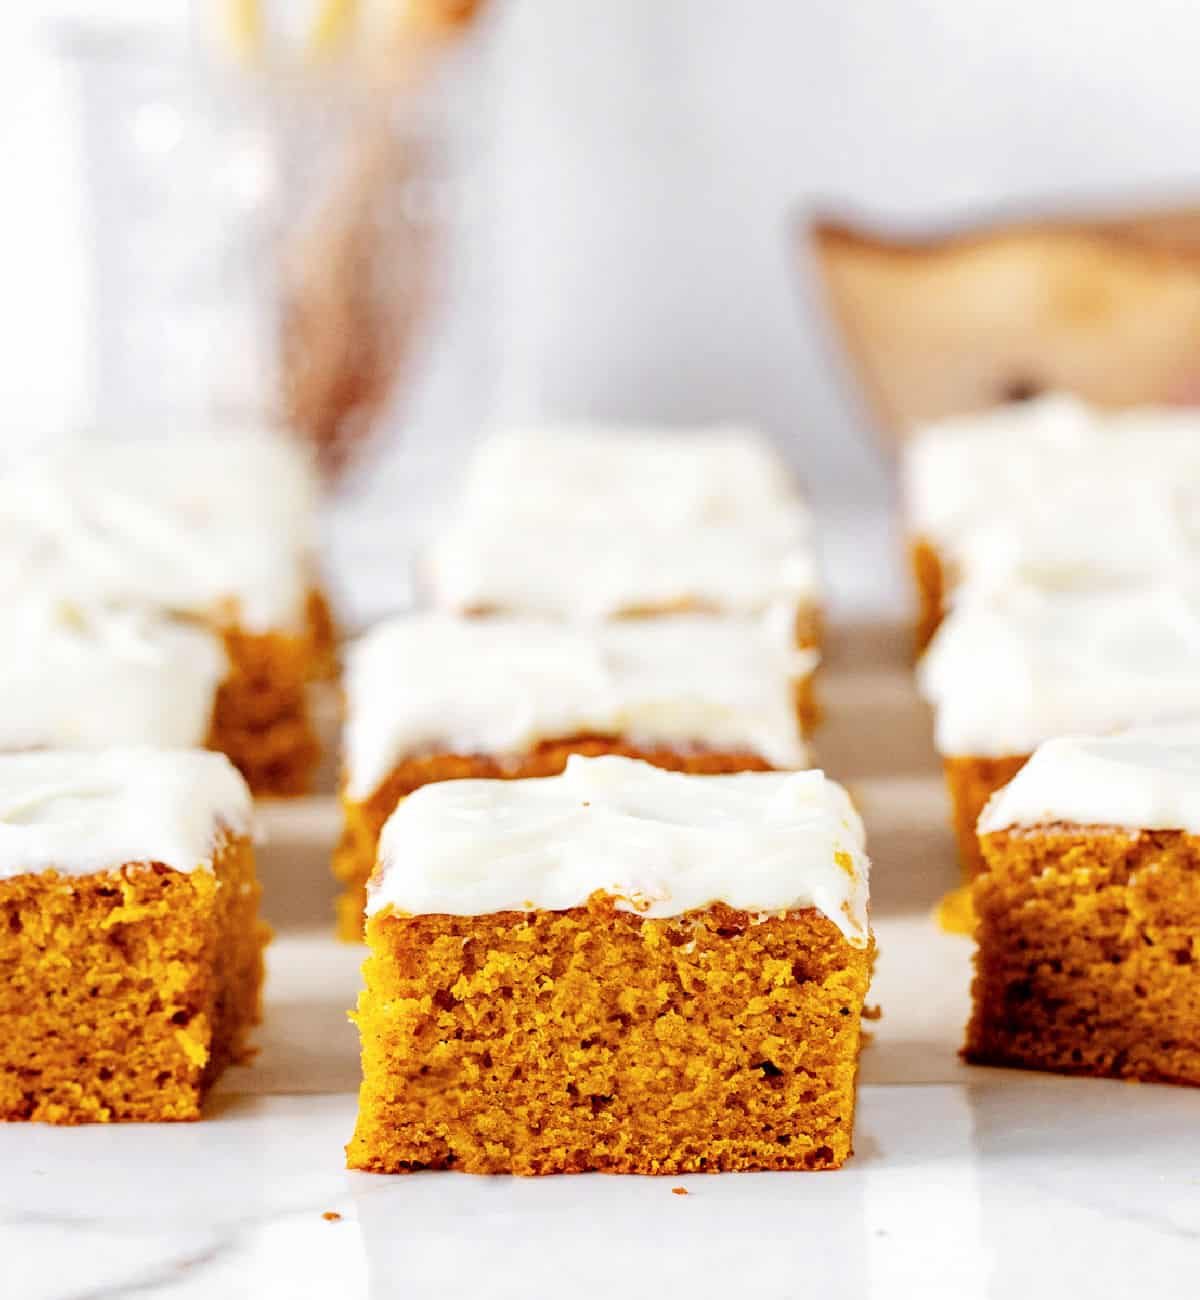 Squares of pumpkin cake with cream cheese frosting on white surface